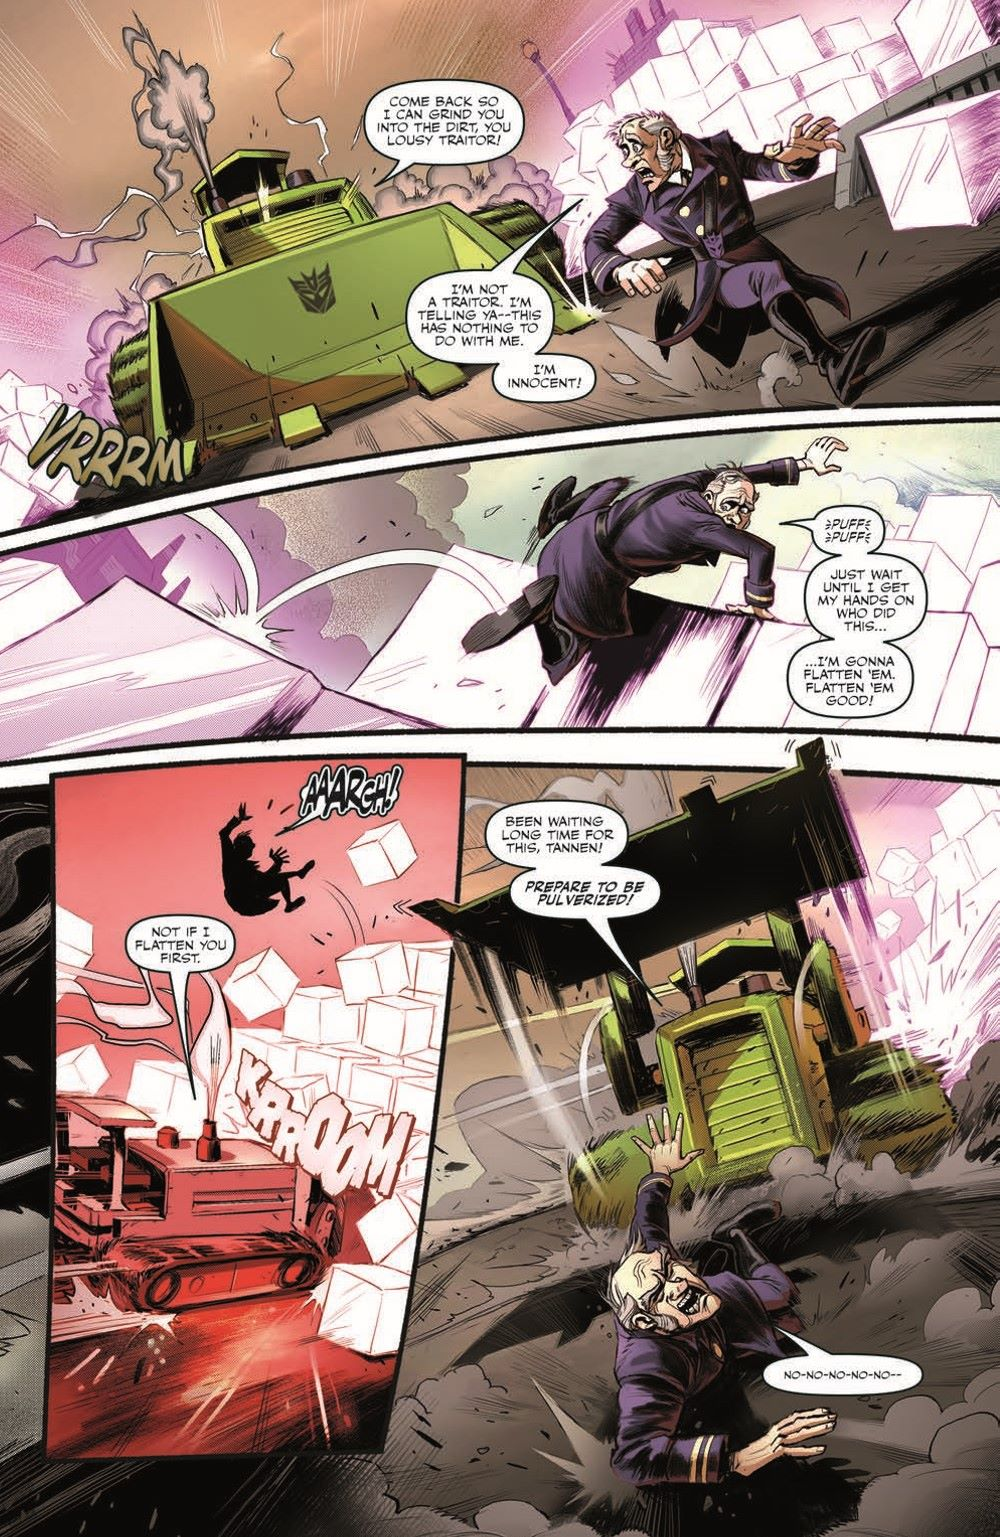 TF_BTTF03-pr-6 ComicList Previews: TRANSFORMERS BACK TO THE FUTURE #3 (OF 4)